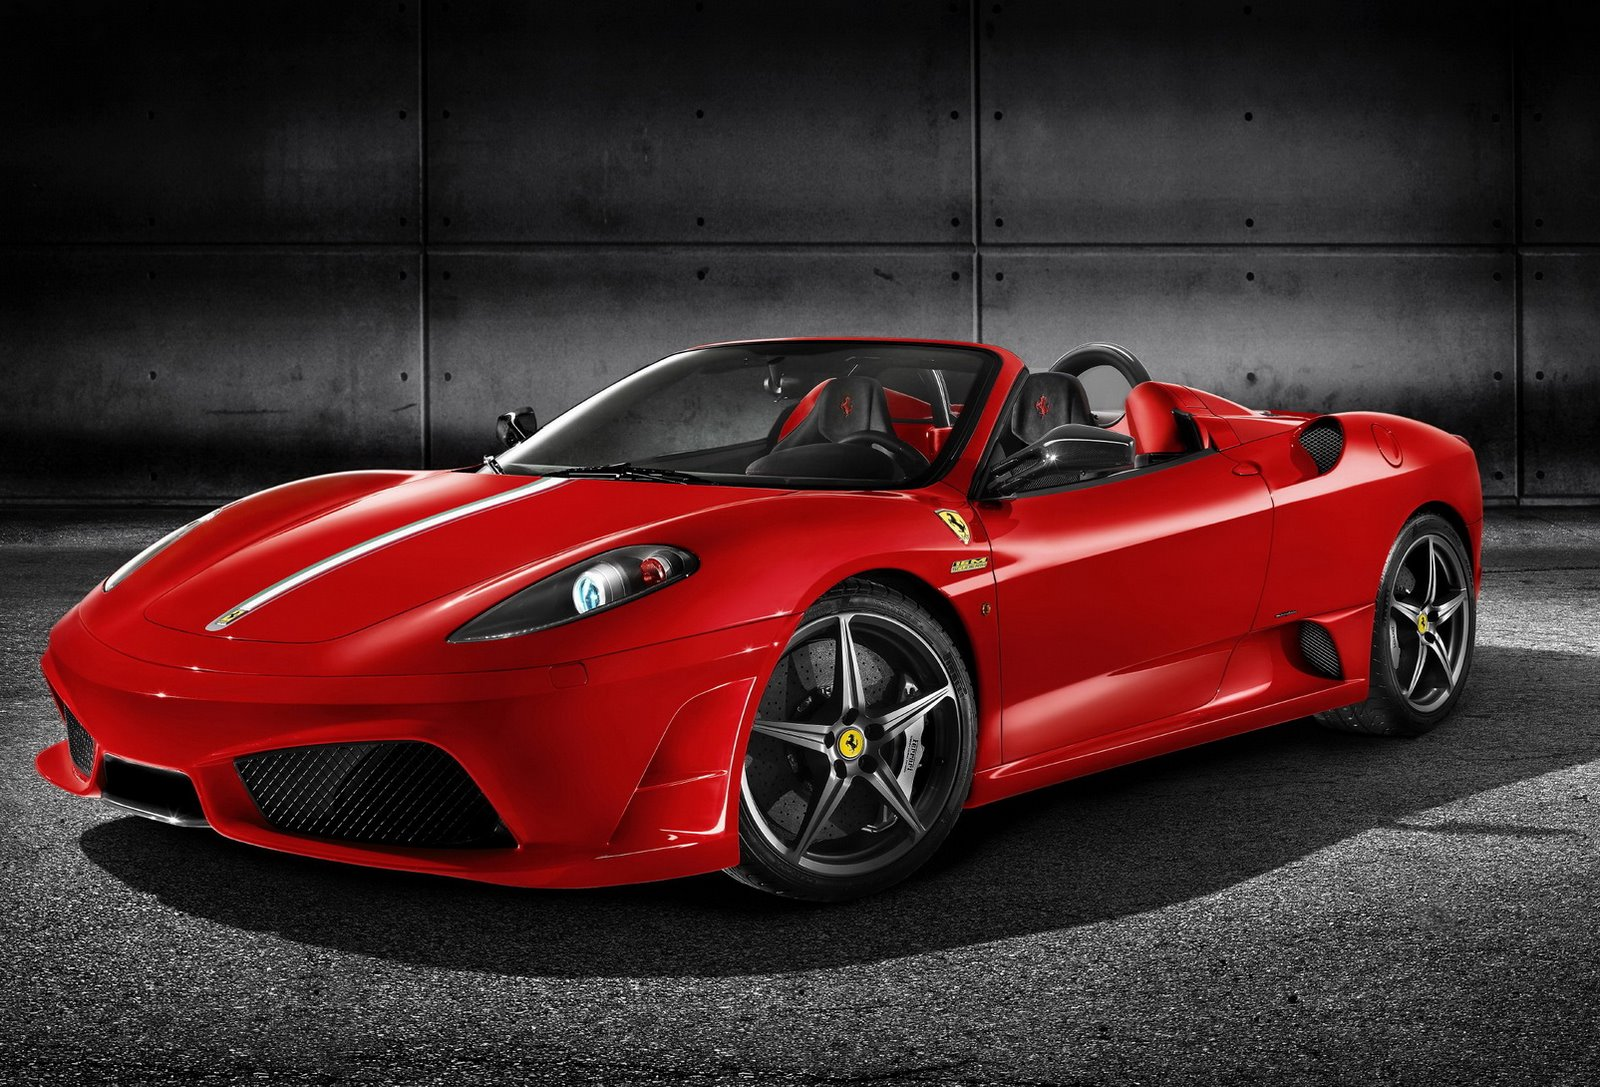 ferrari f430 scuderia spider 16m at mugello revealed photo it s your auto world new cars. Black Bedroom Furniture Sets. Home Design Ideas